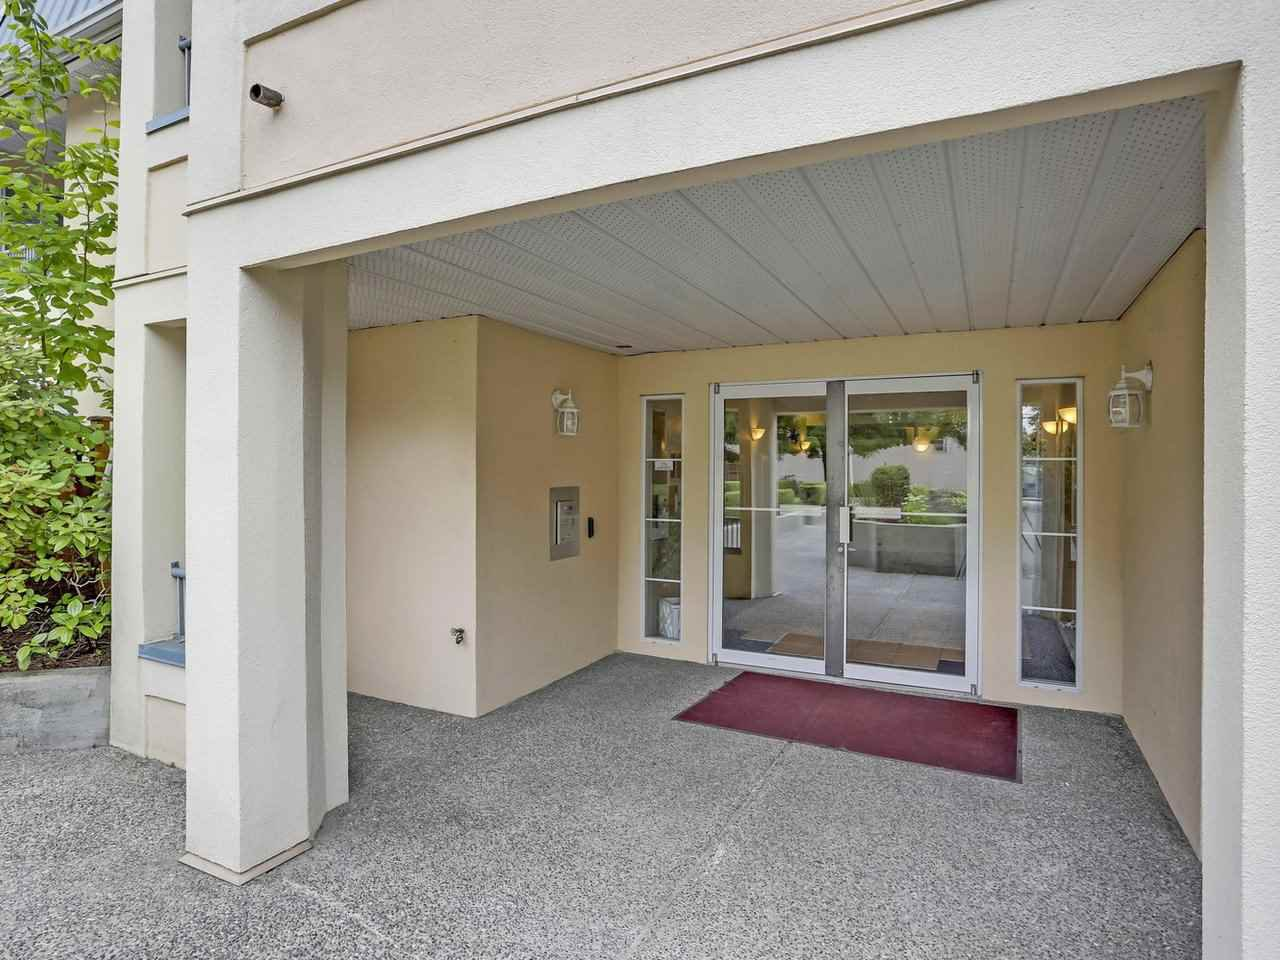 Photo 3: Photos: 107 295 SCHOOLHOUSE Street in Coquitlam: Maillardville Condo for sale : MLS®# R2286753